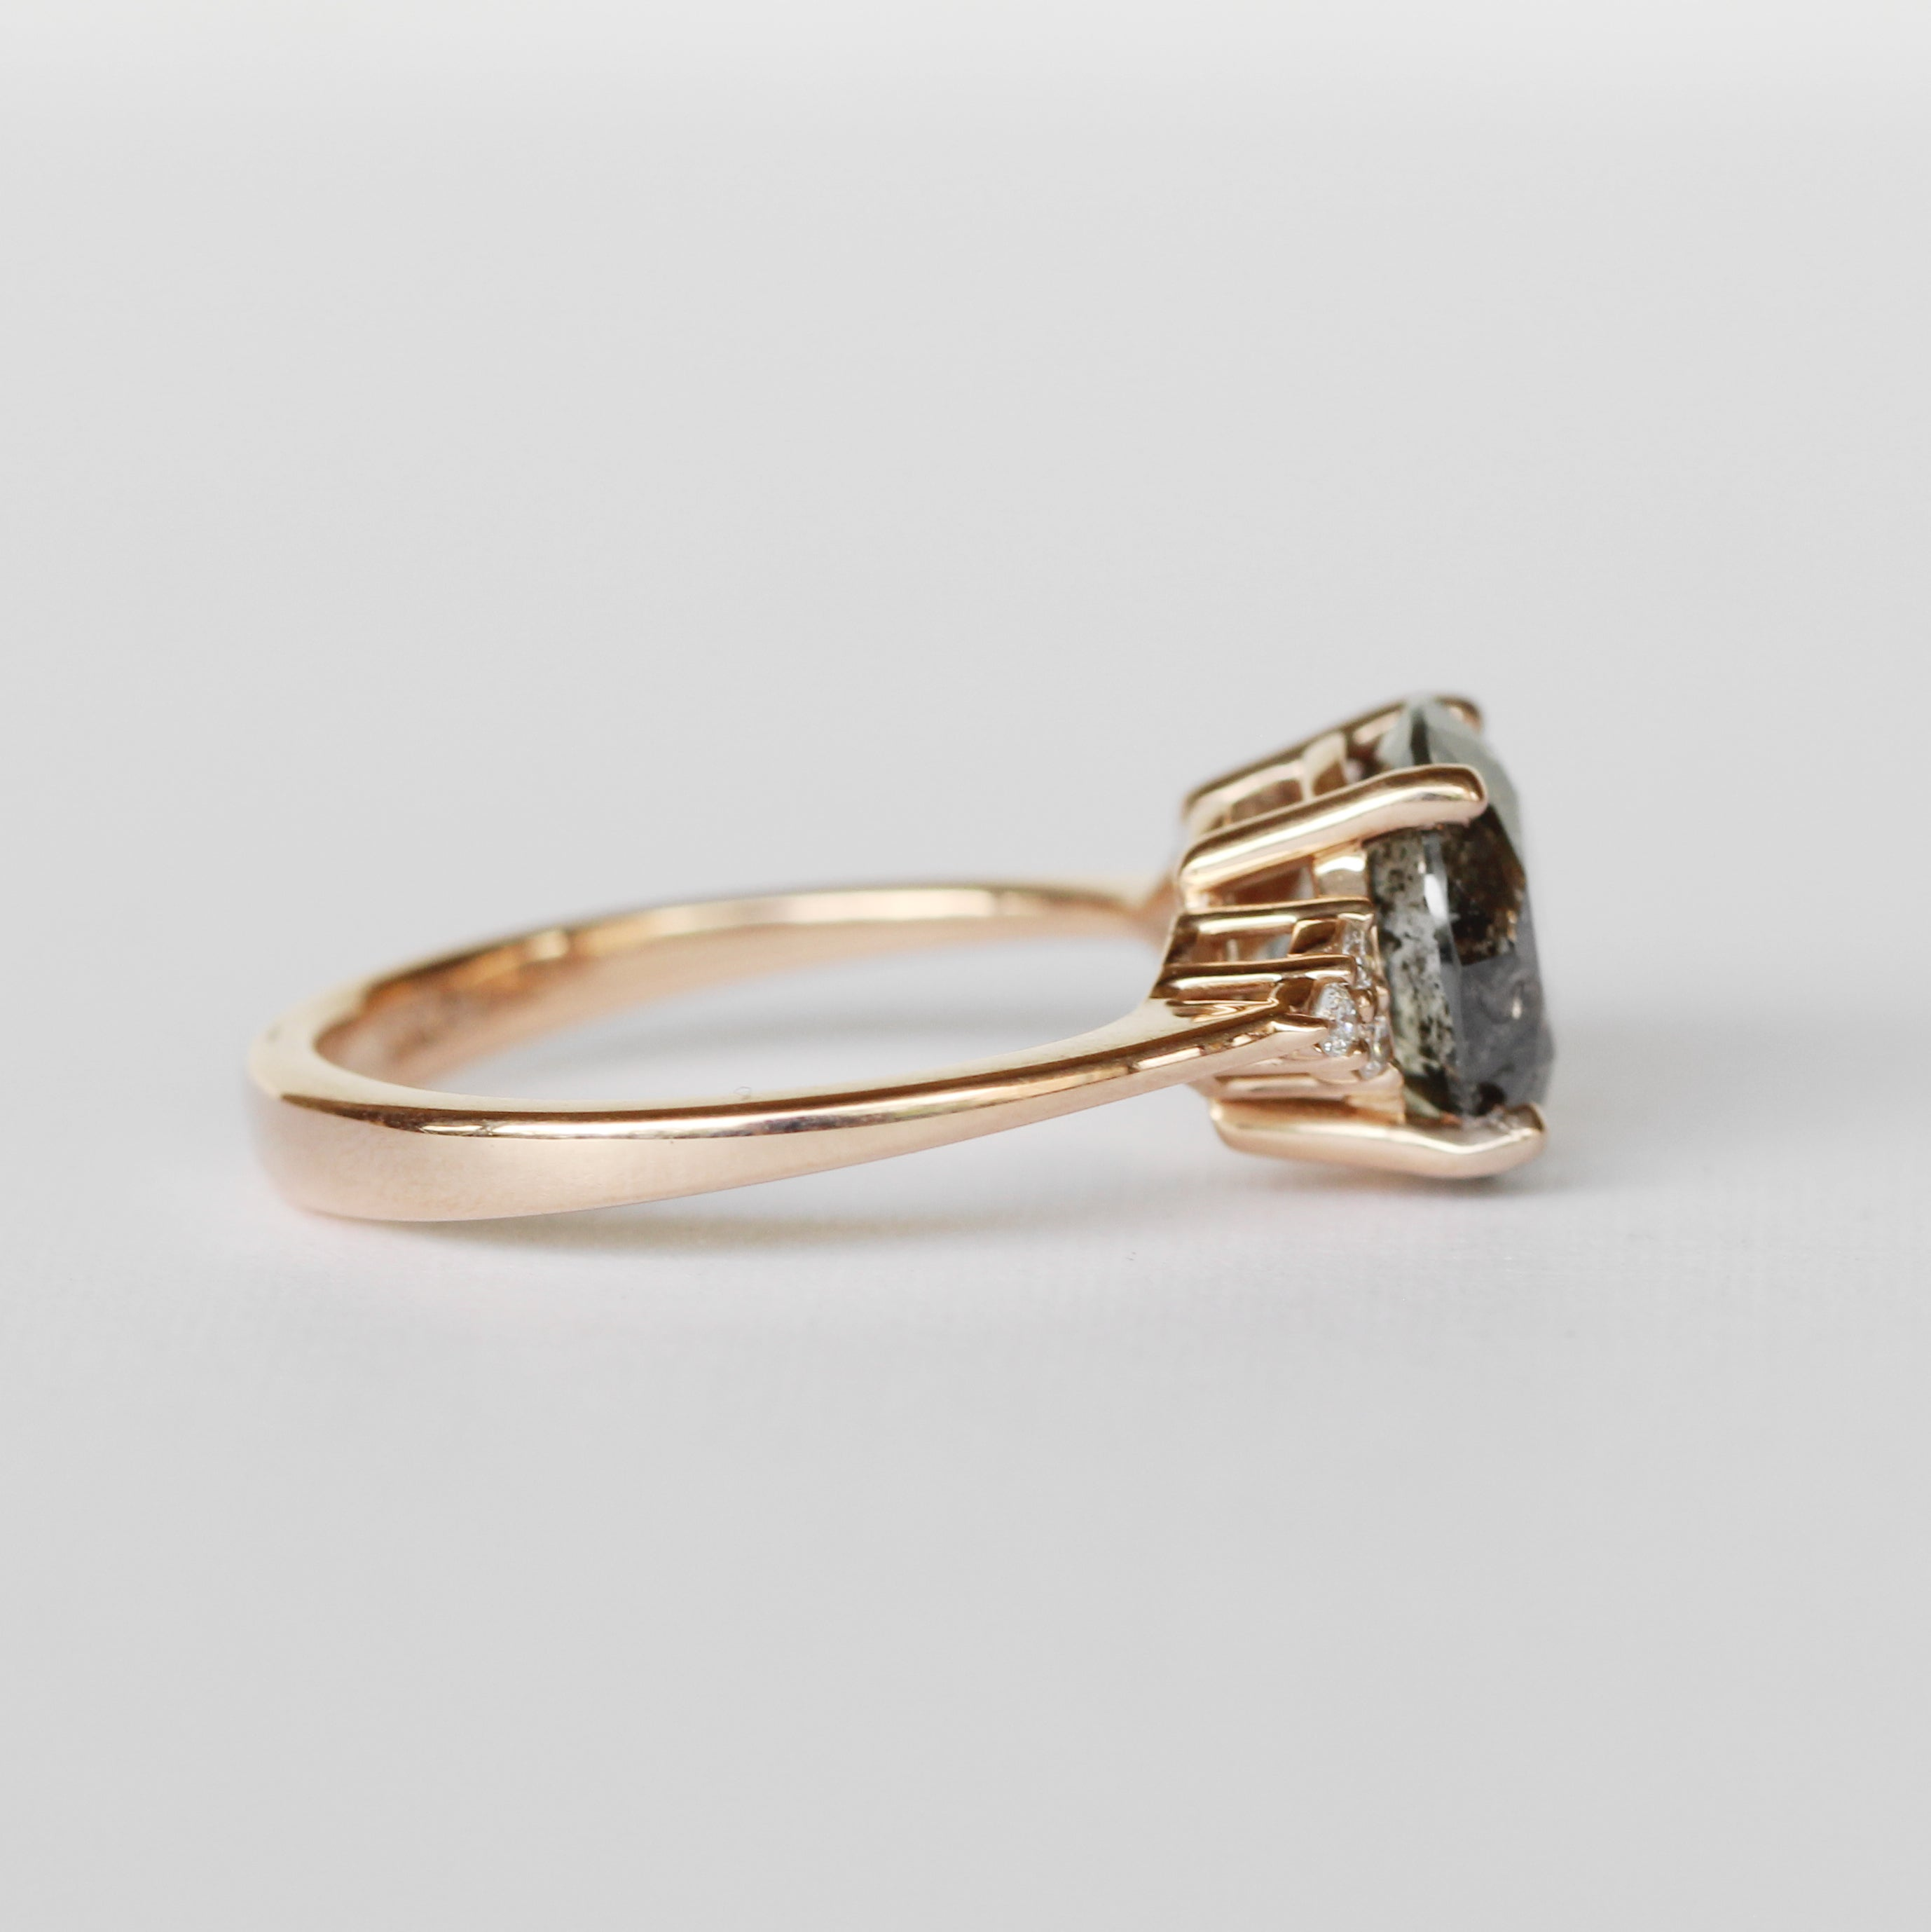 Imogene Ring with a 3.13 ct Celestial Diamond in 14k Rose Gold - Ready to Size and Ship - Celestial Diamonds ® by Midwinter Co.